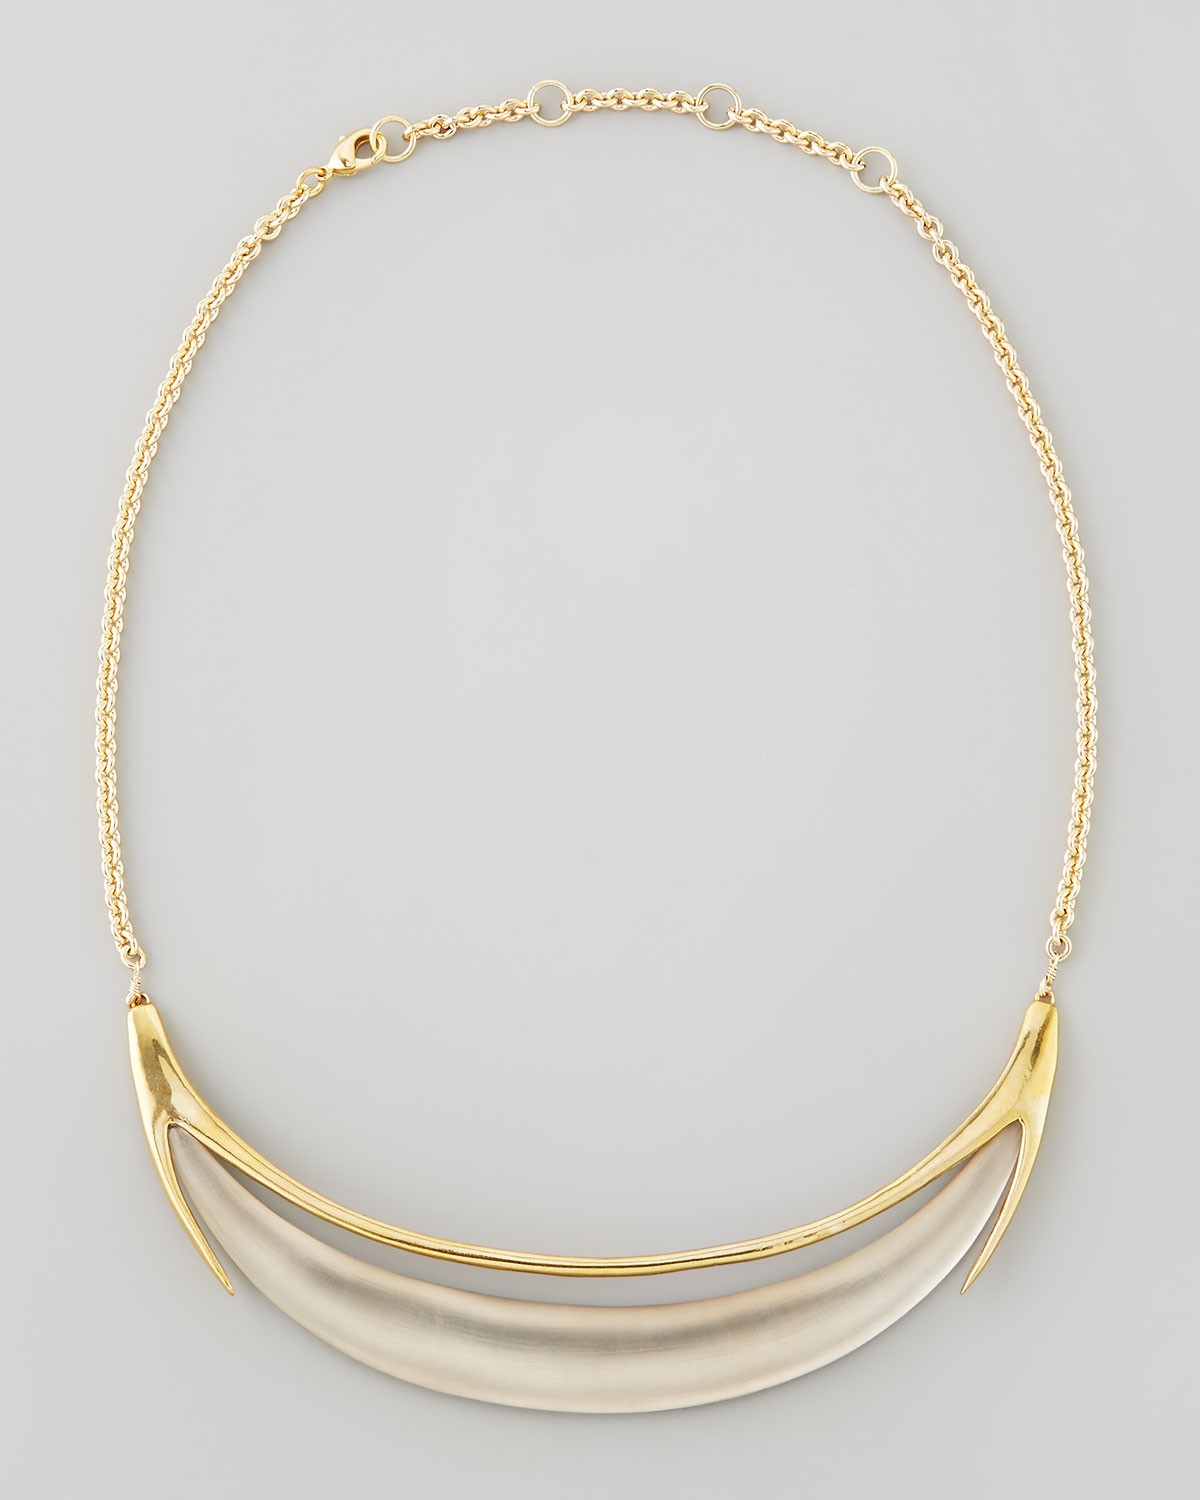 Alexis bittar neo boho minimalist crescent lucite necklace for Women s minimalist jewelry